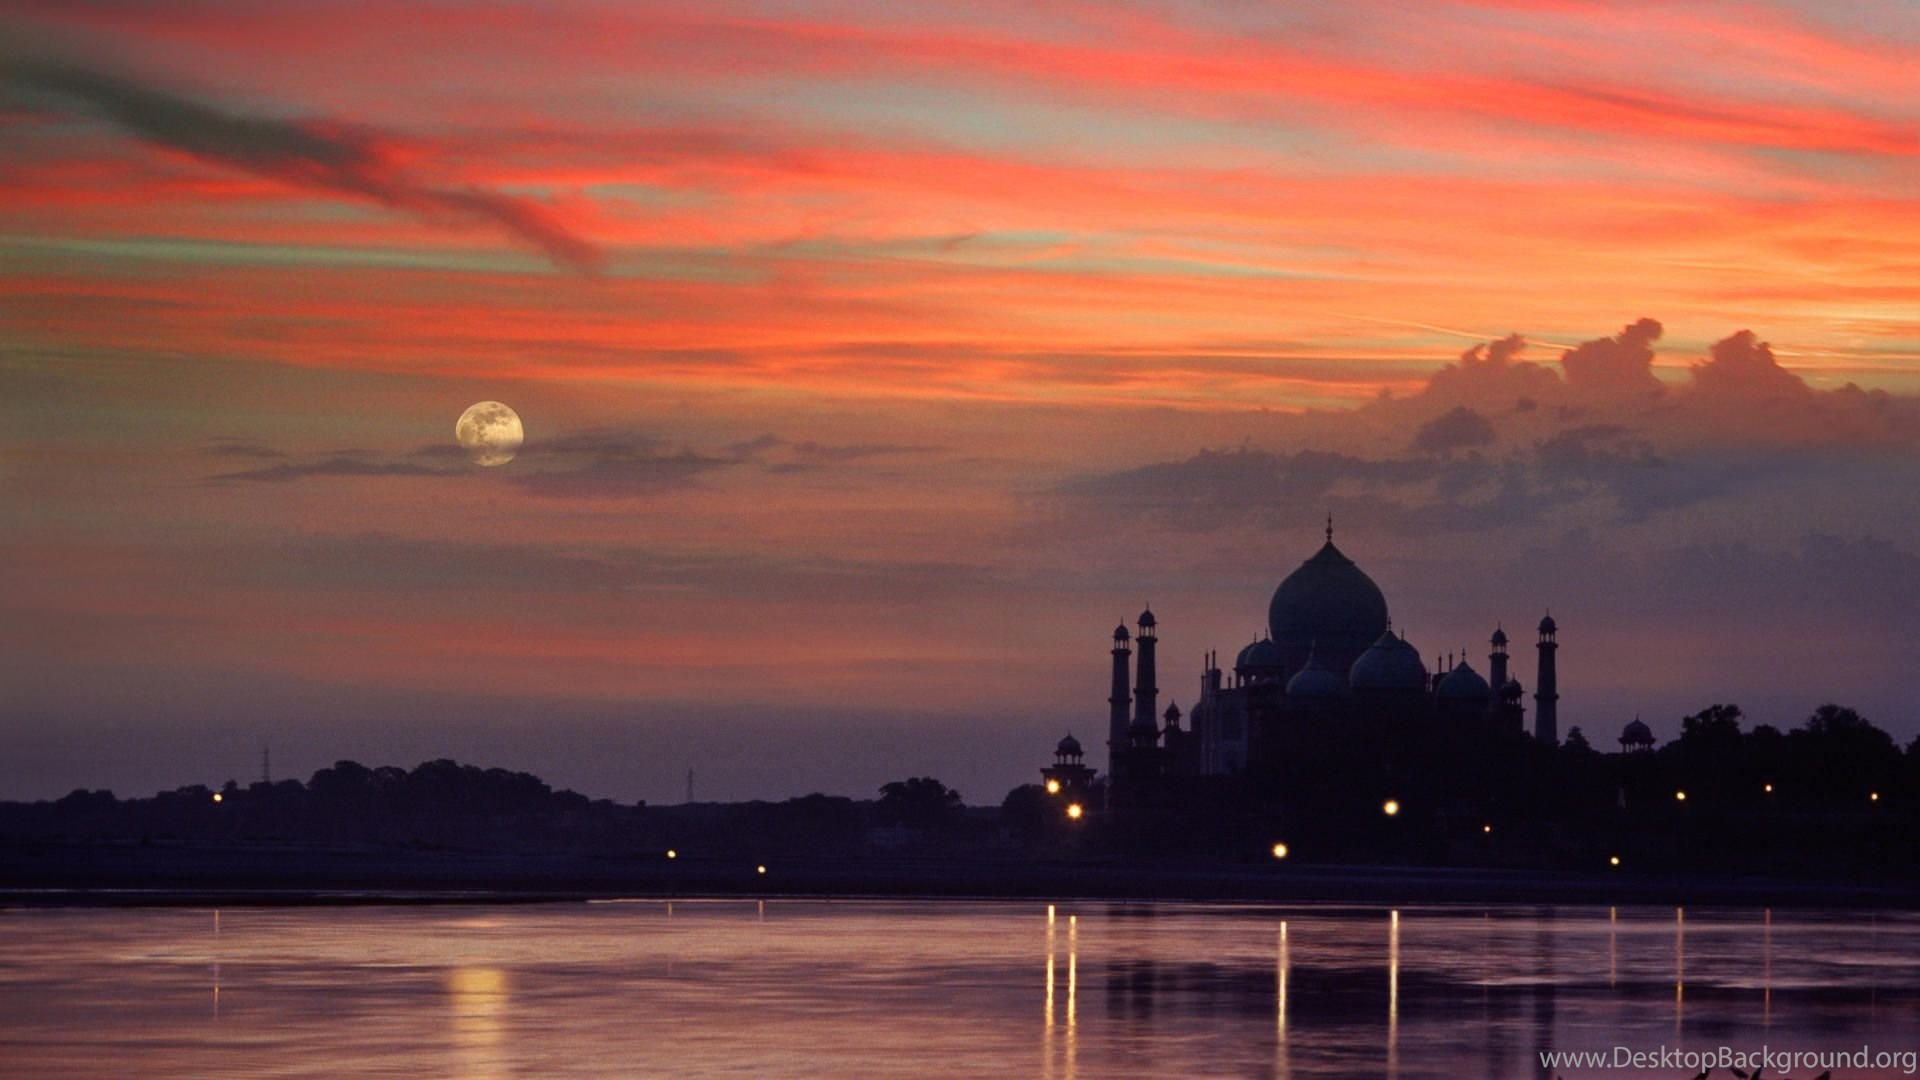 India Nature Wallpapers Hd Wallpapers And Pictures Desktop Background